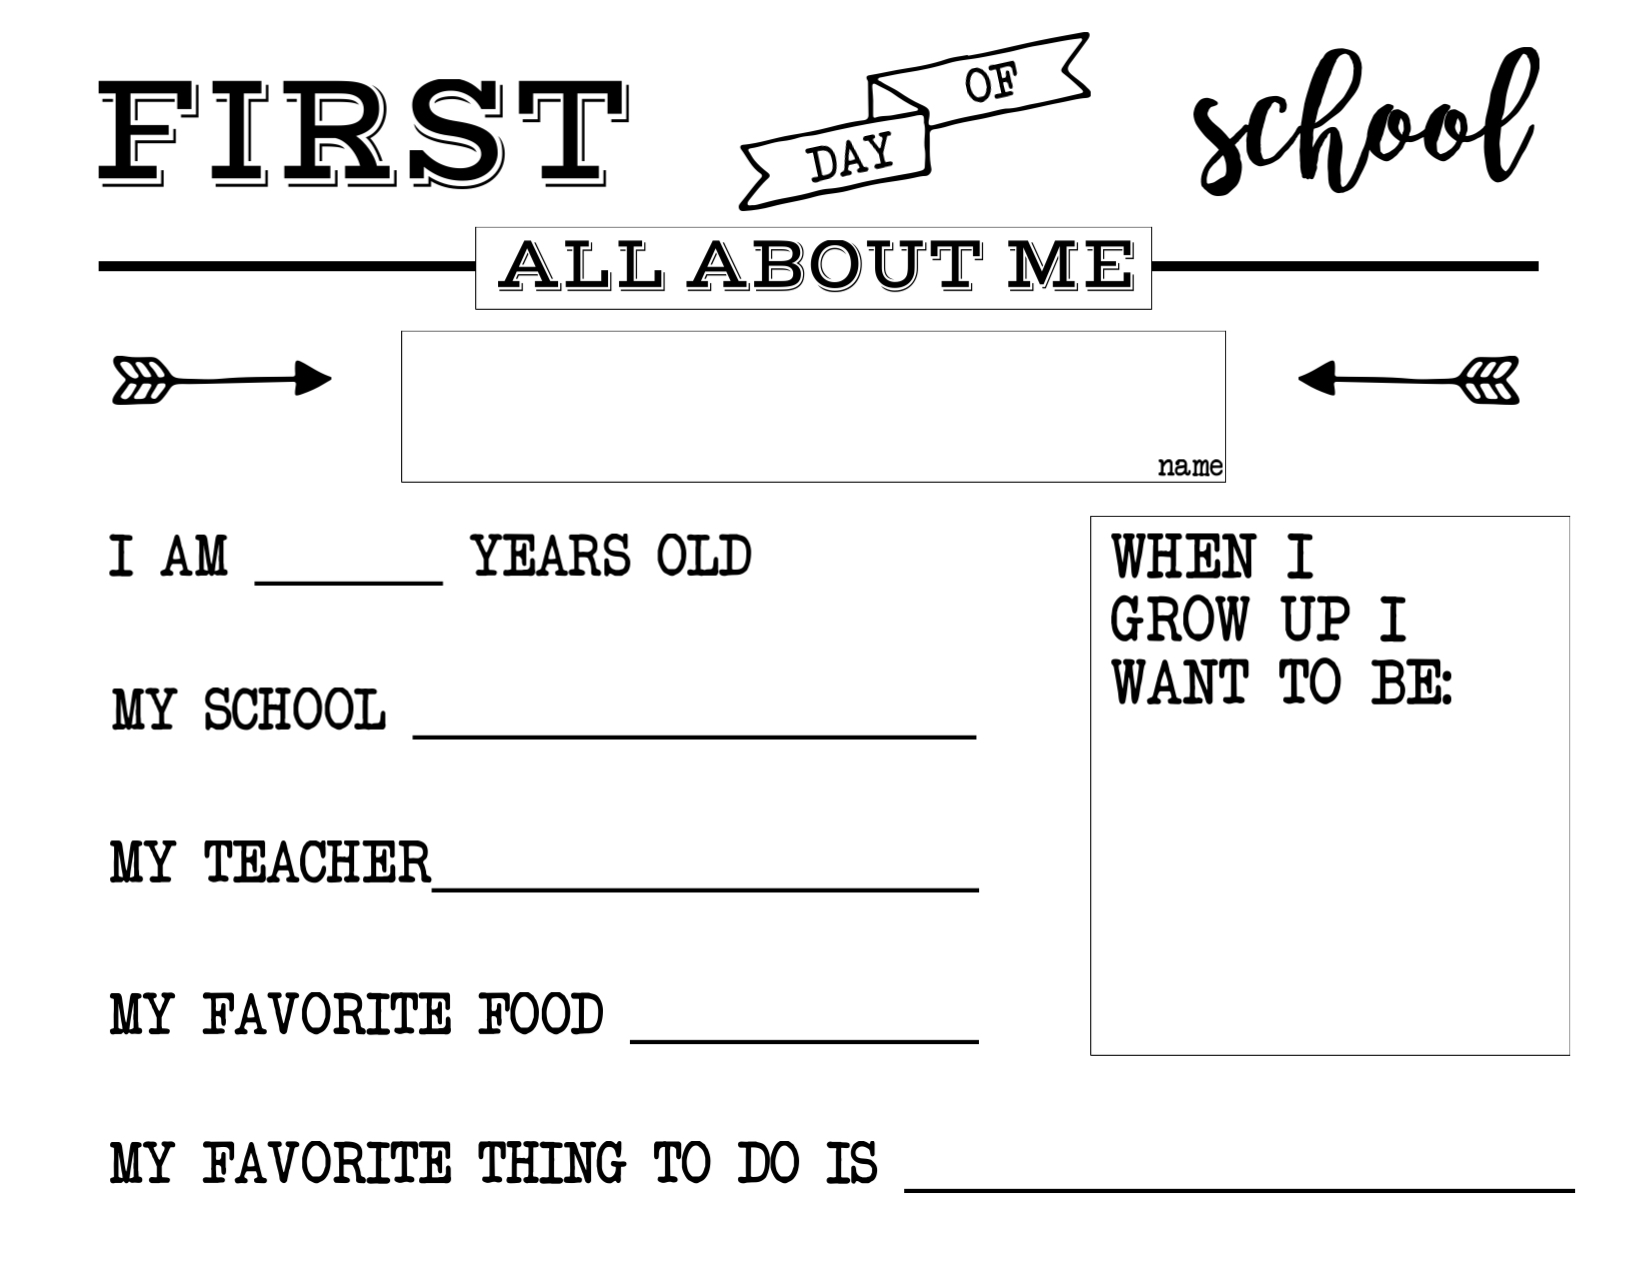 First Day Of School All About Me Sign